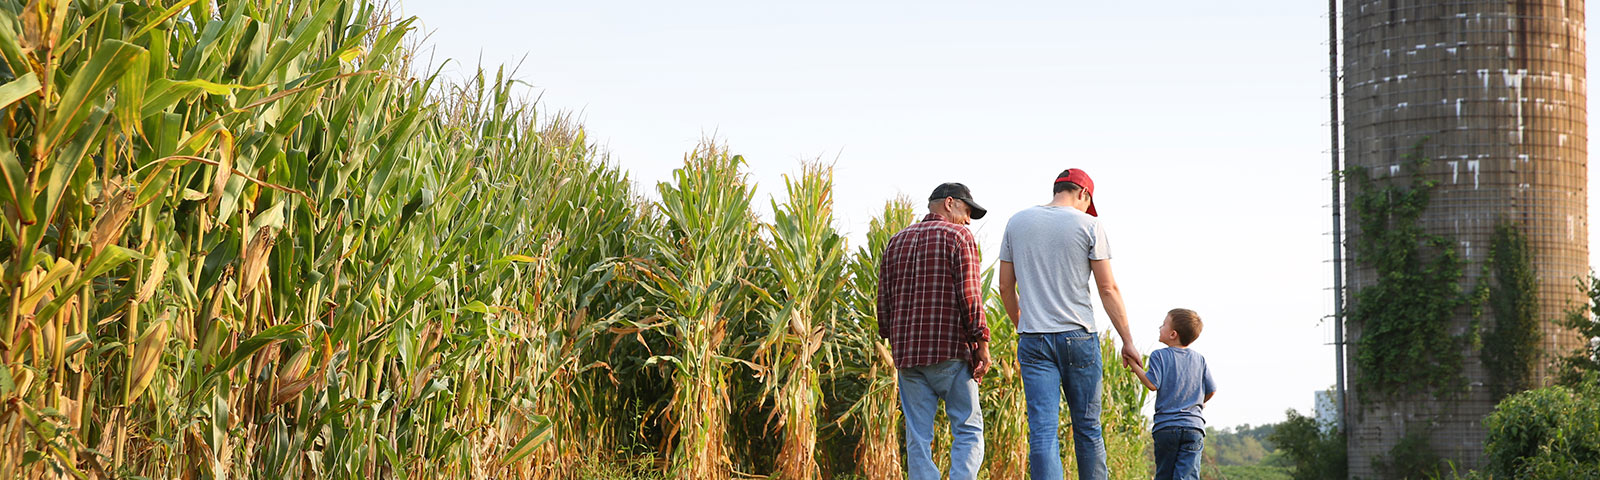 Family near corn field.